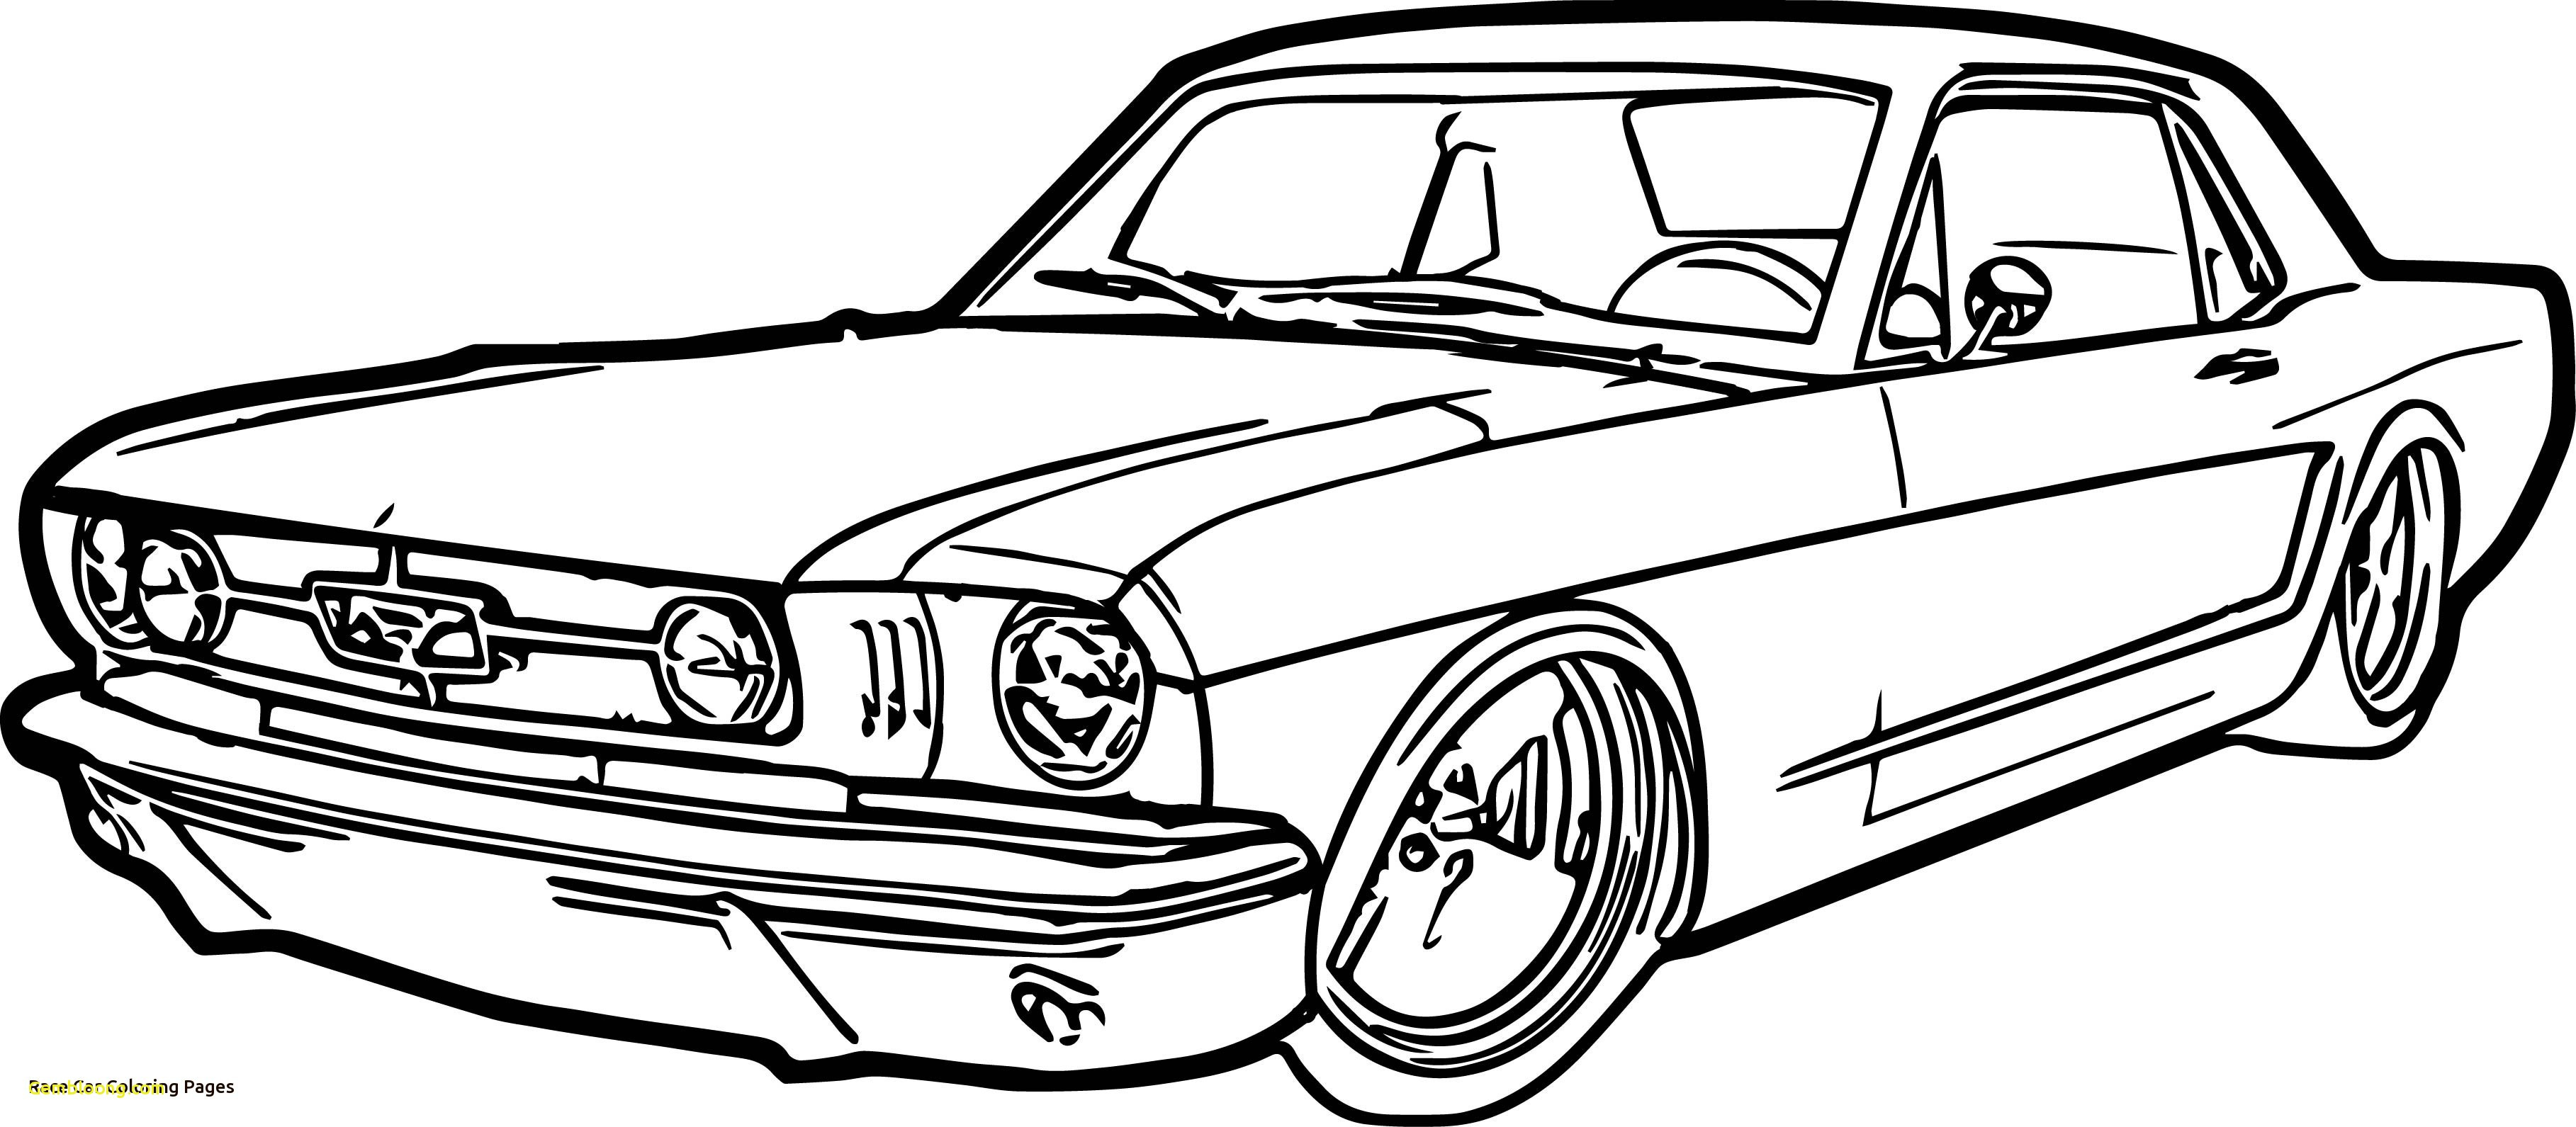 3635x1591 Nascar Race Car Coloring Pages Lovely Sprint Cars Vector Boy Name